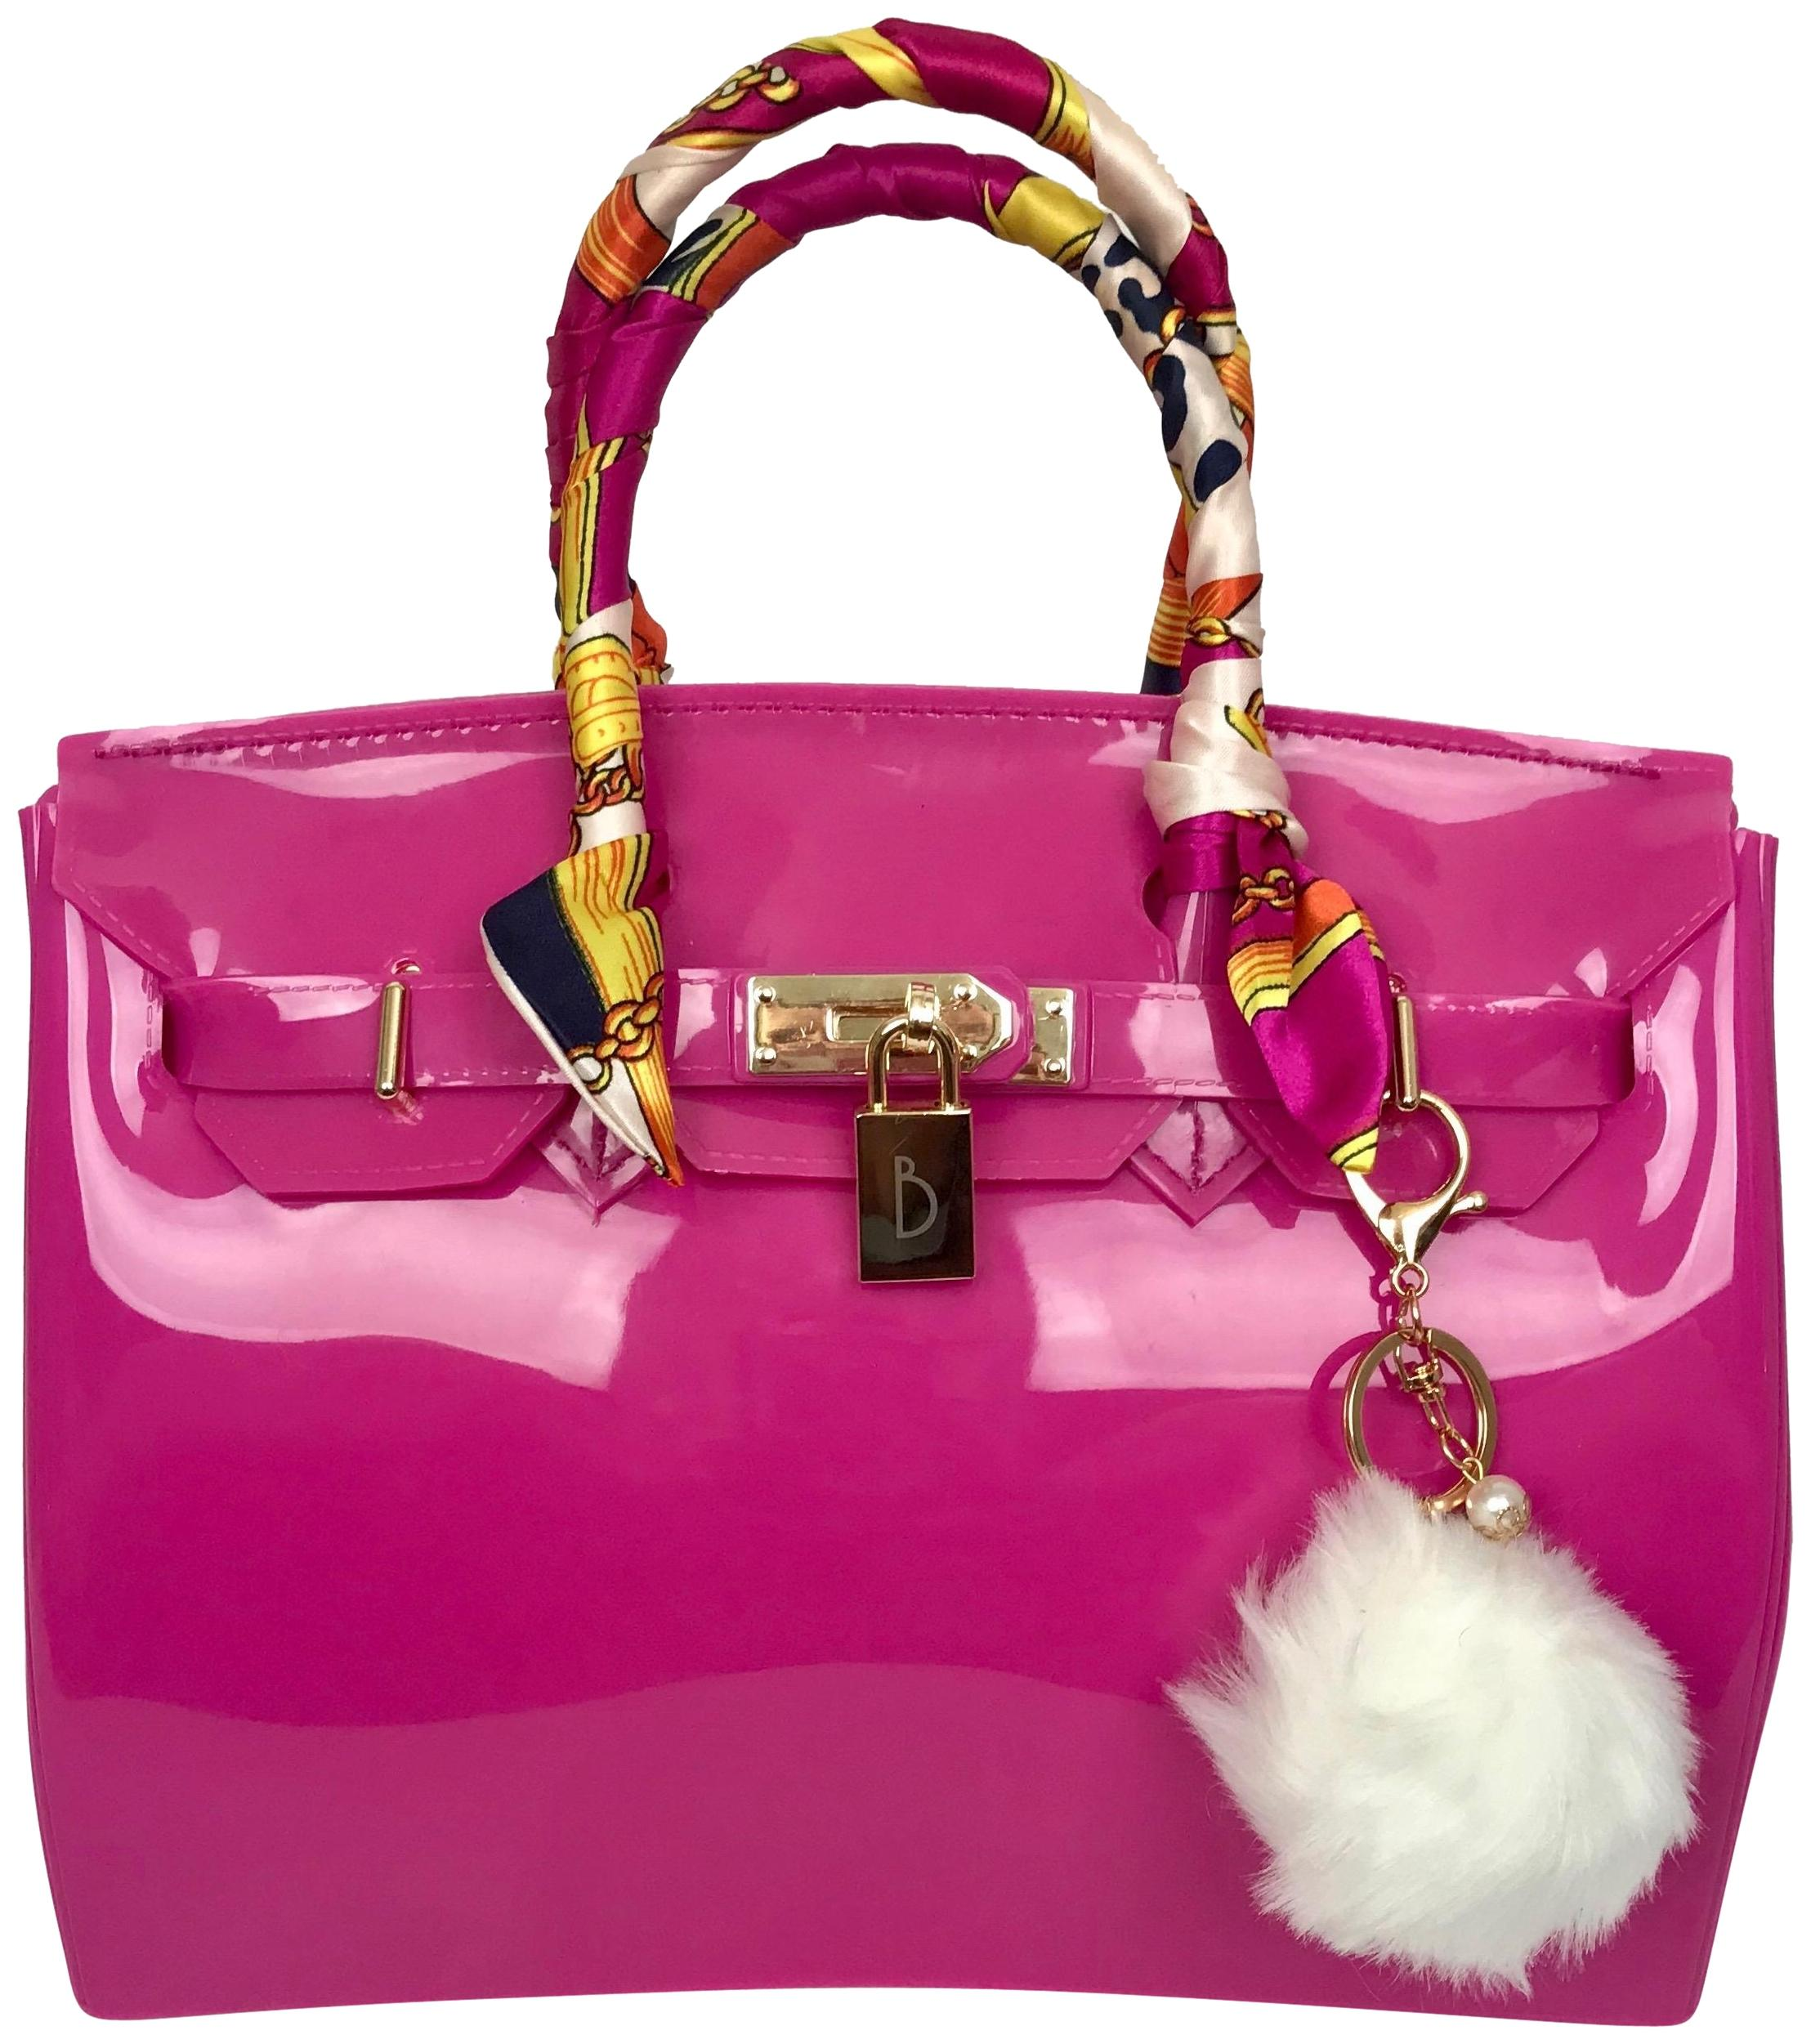 81ae84b1c51a ... low price jelly couture birkin hermes beach tote in hot pink 42344 08f71